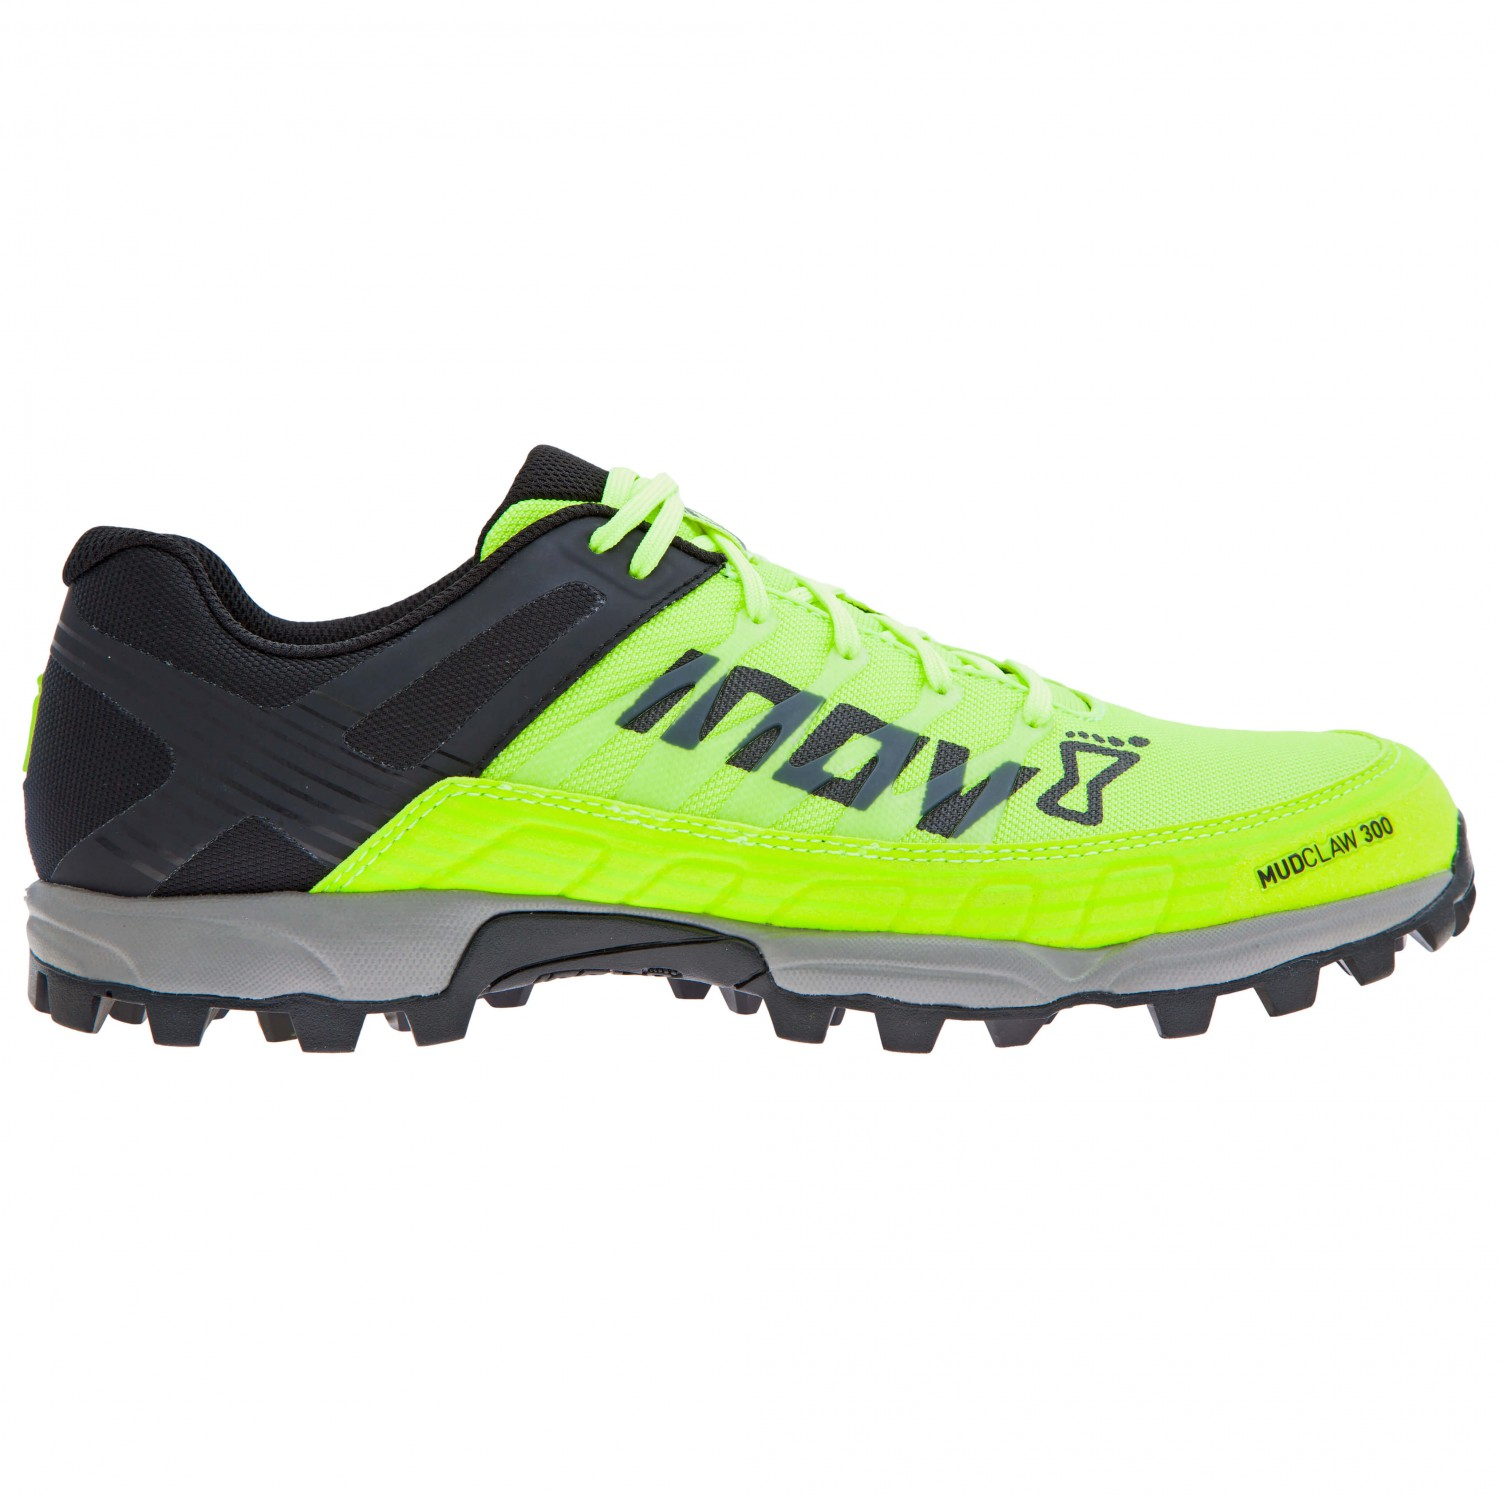 Inov-8 MUDCLAW 300 - Trail running shoes - neon yellow/black/grey ZiIK9t